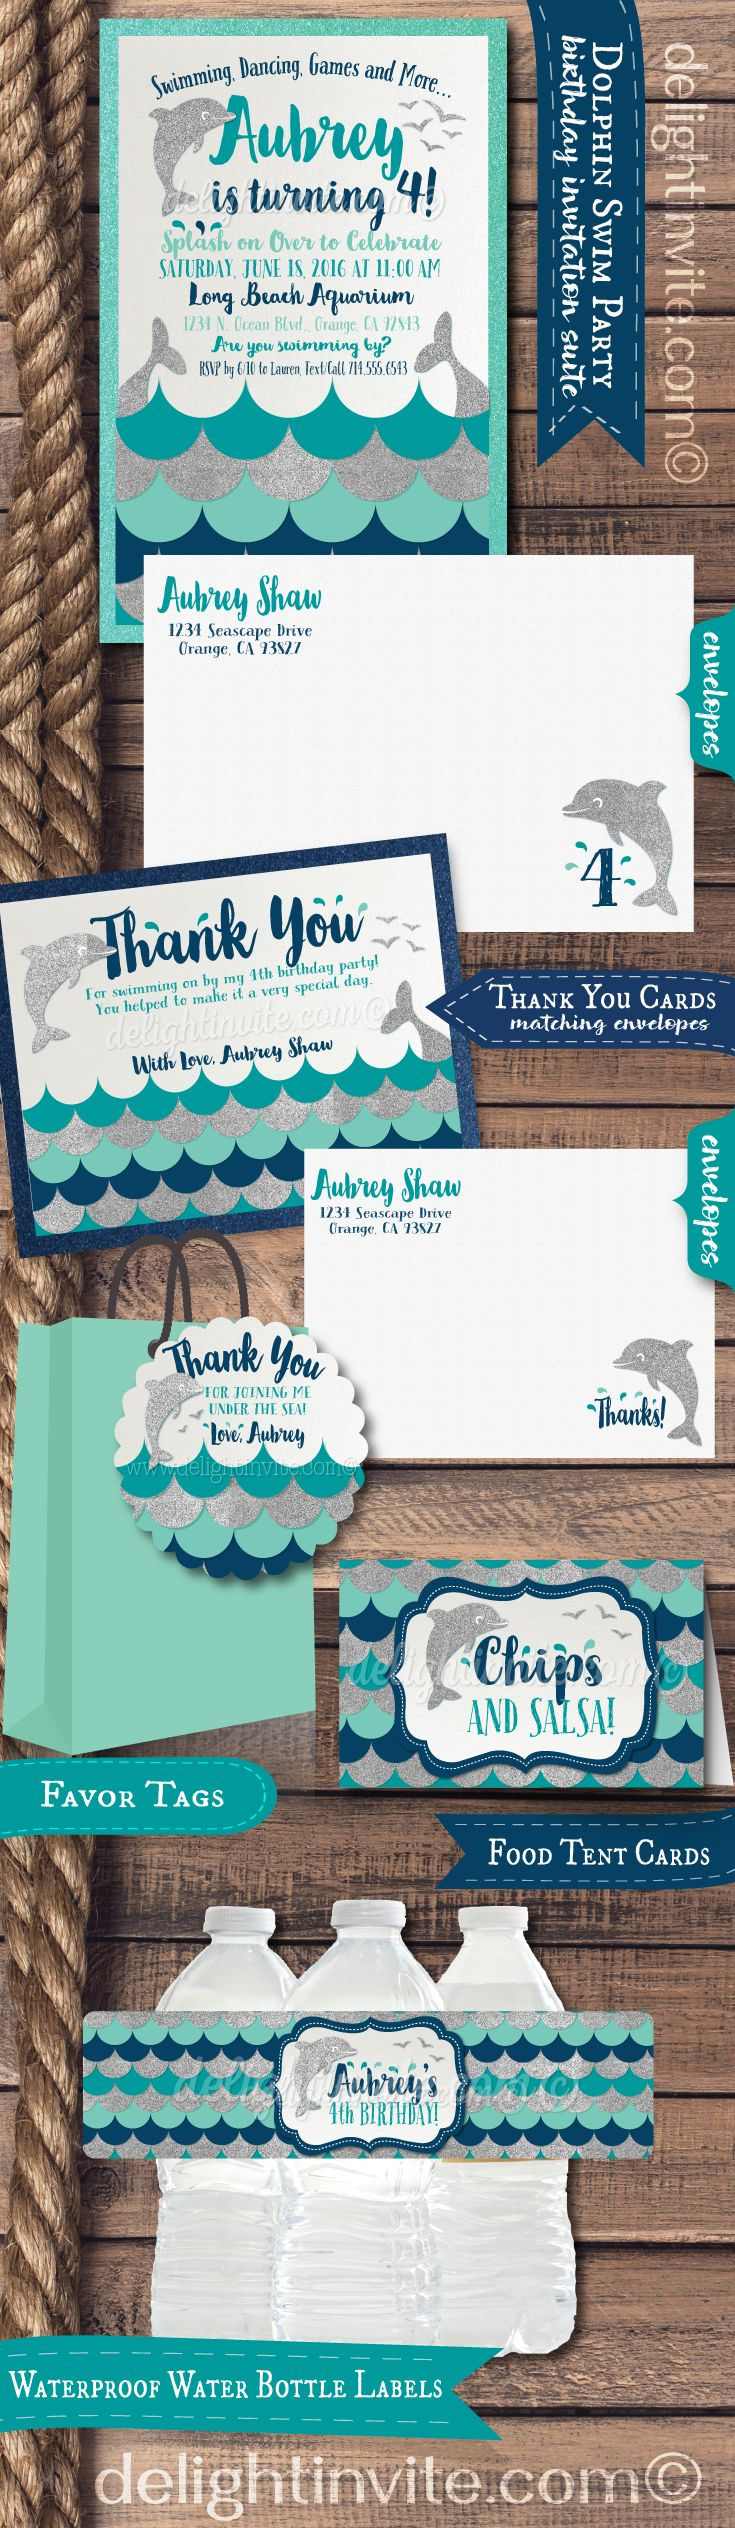 """This darling Dolphin theme birthday party set is perfect if you are planning a swim party or an aquarium theme birthday! Expertly printed on shimmer paper and artfully hand-mounted on metallic aqua blue card stock, these dolphin invitations are stunning in person! The silver glitter elements with the aqua and navy blue color scheme, will make this dolphin inspired party set a HUGE SPASH at your upcoming """"Under the Sea"""" celebration! Check out the matching items too!"""